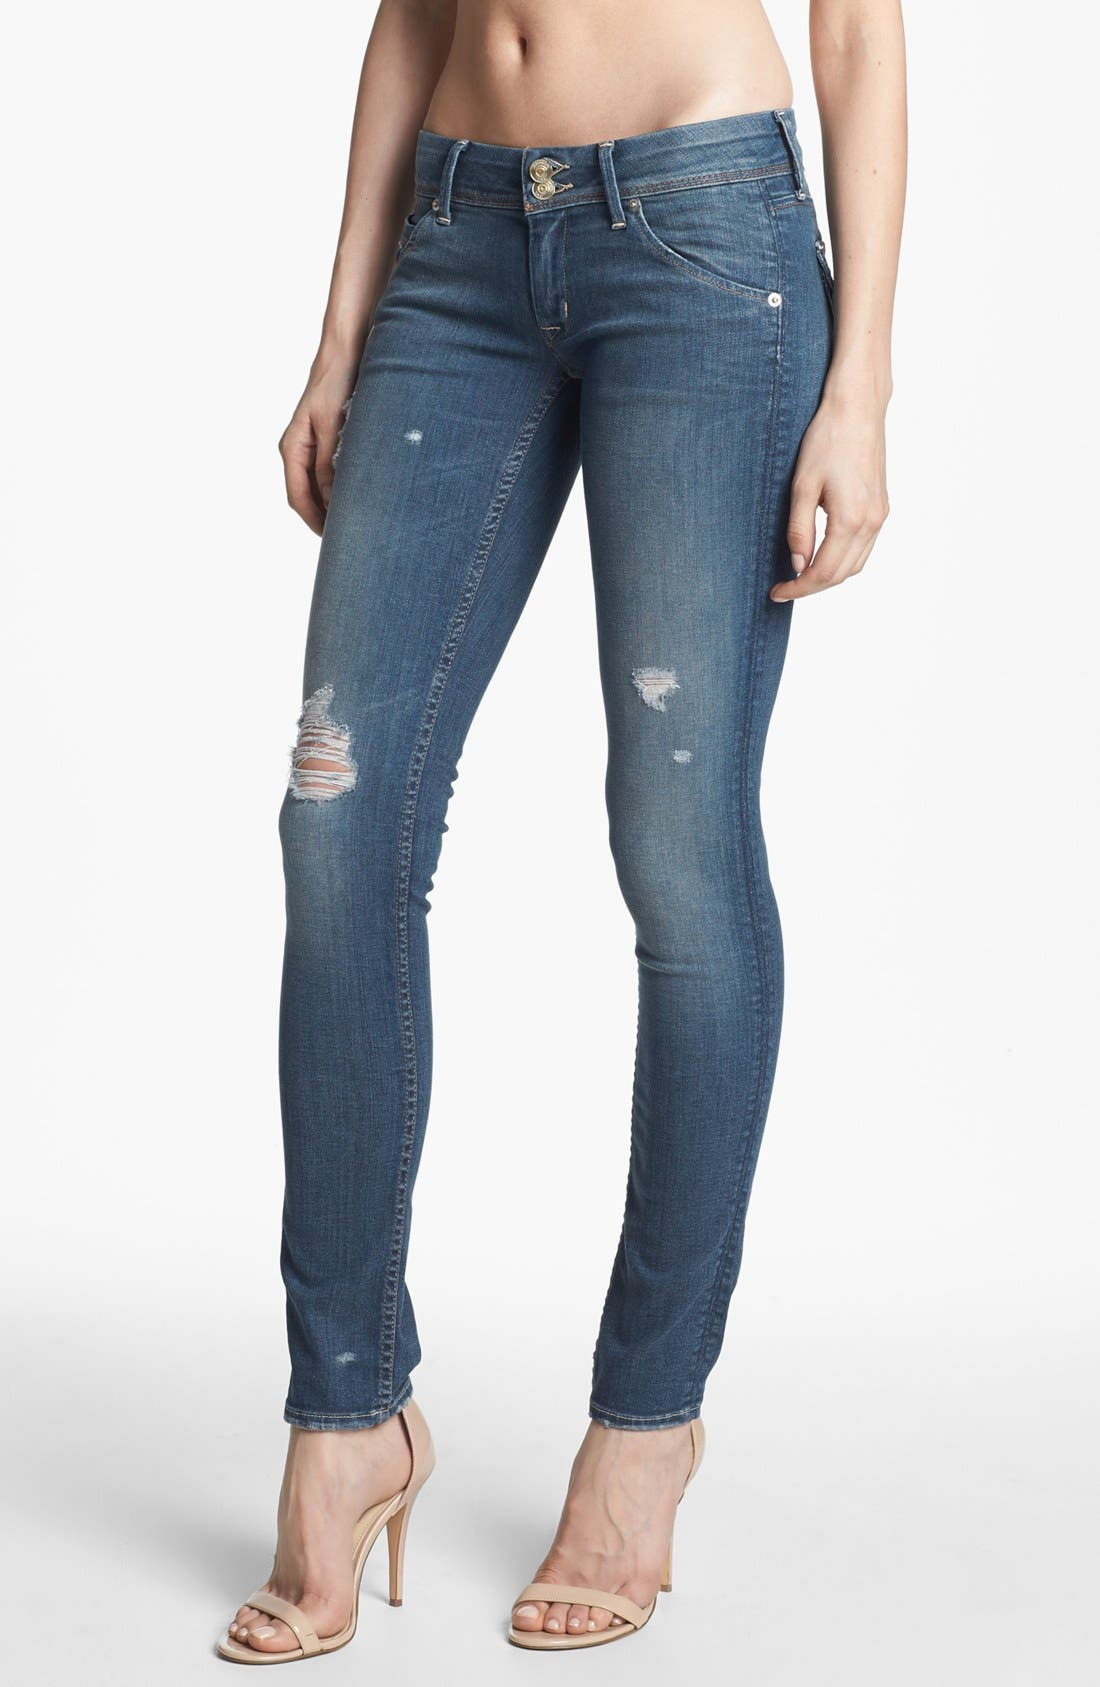 Alternate Image 1 Selected - Hudson Jeans 'Collin' Distressed Skinny Jeans (Vintage Florence)